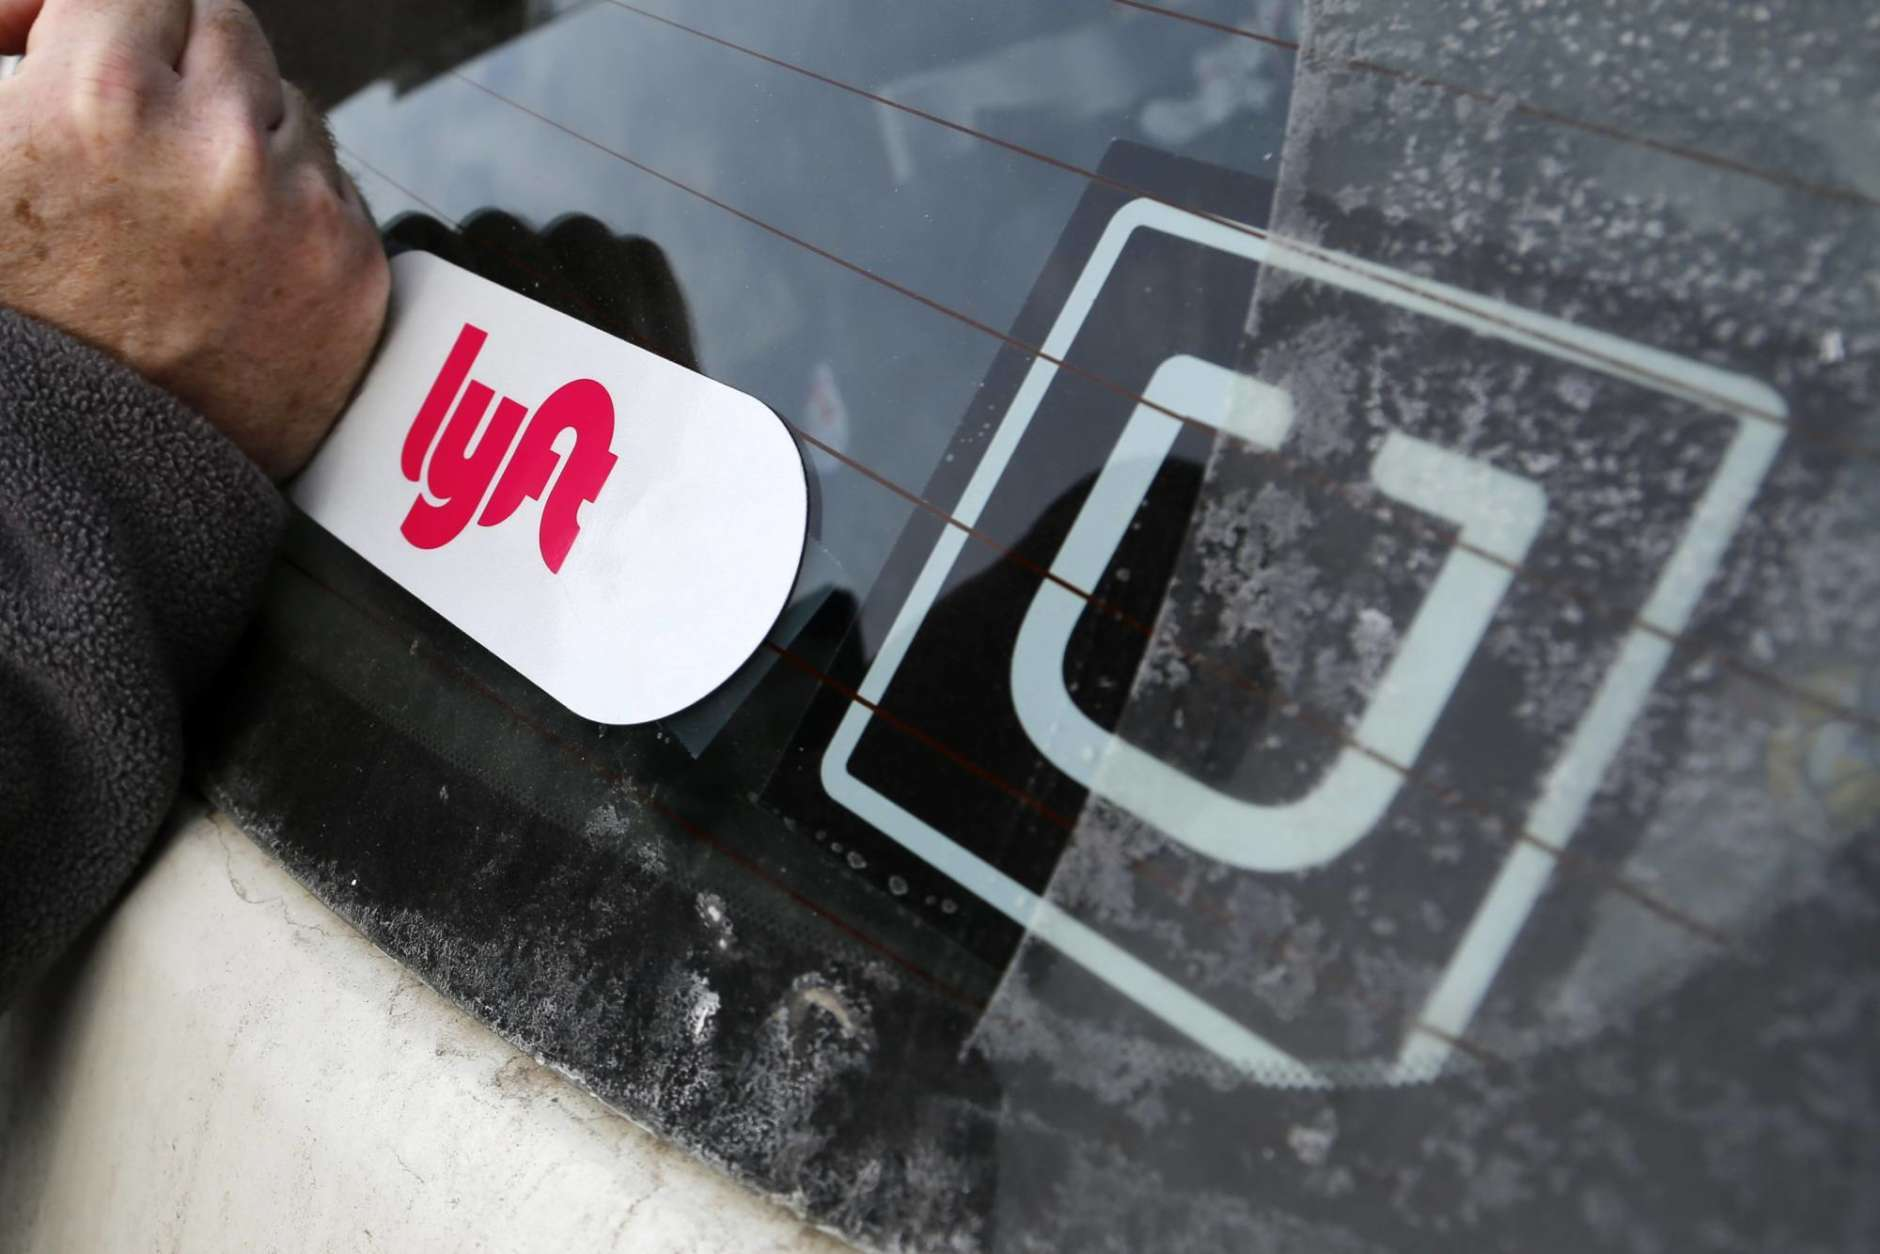 FILE- In this Jan. 31, 2018, file photo, a Lyft logo is installed on a Lyft driver's car next to an Uber sticker in Pittsburgh. Lyft and Uber are expanding deeper into health care by offering to take more patients to and from non-emergency medical appointments in markets around the country. (AP Photo/Gene J. Puskar, File)